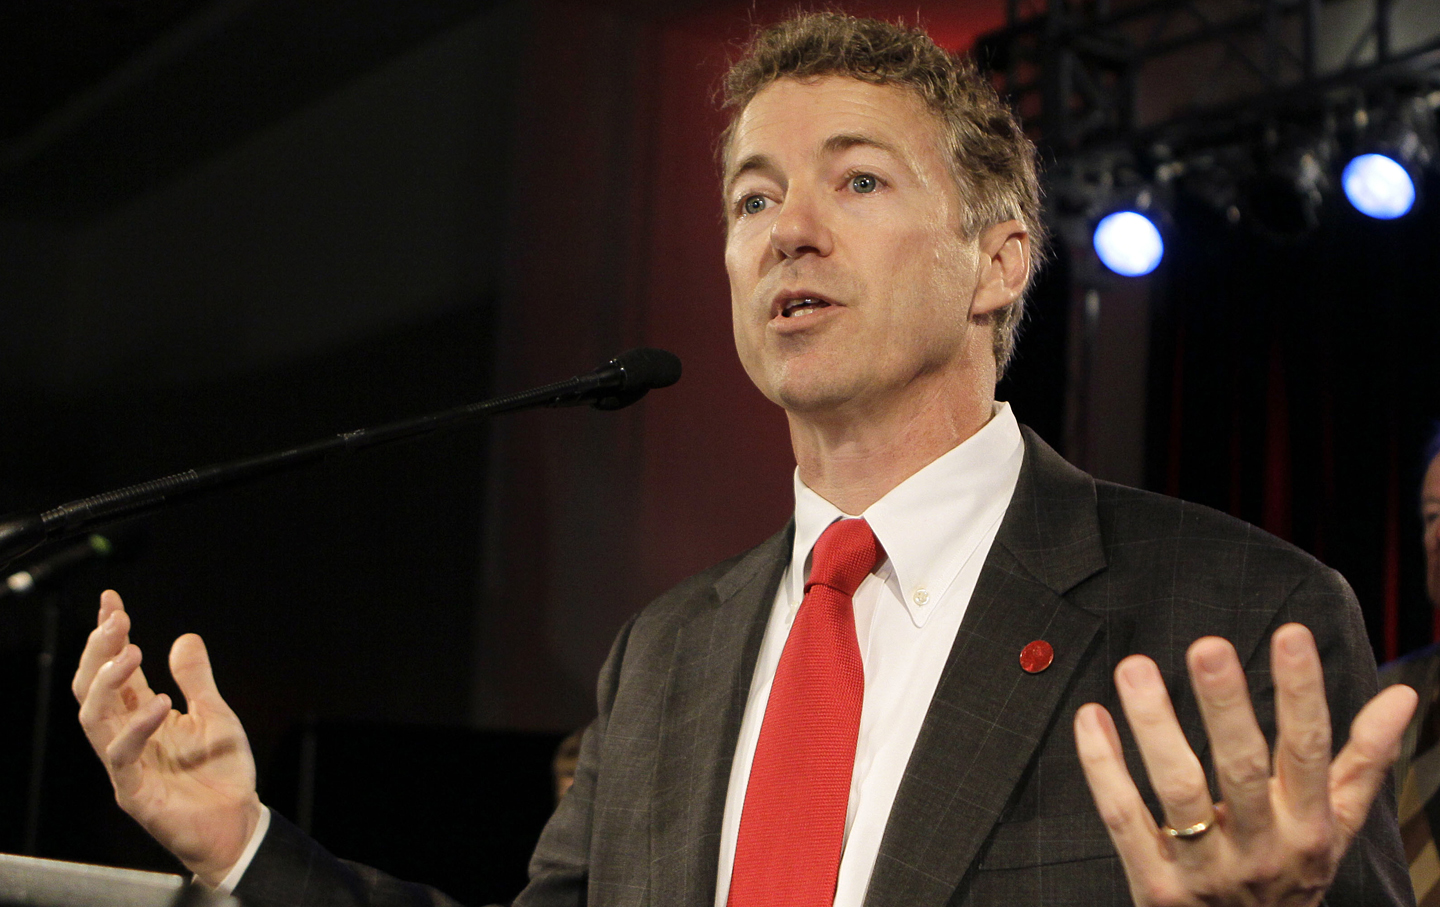 Rand Paul addresses supporters in Bowling Green, Kentucky.